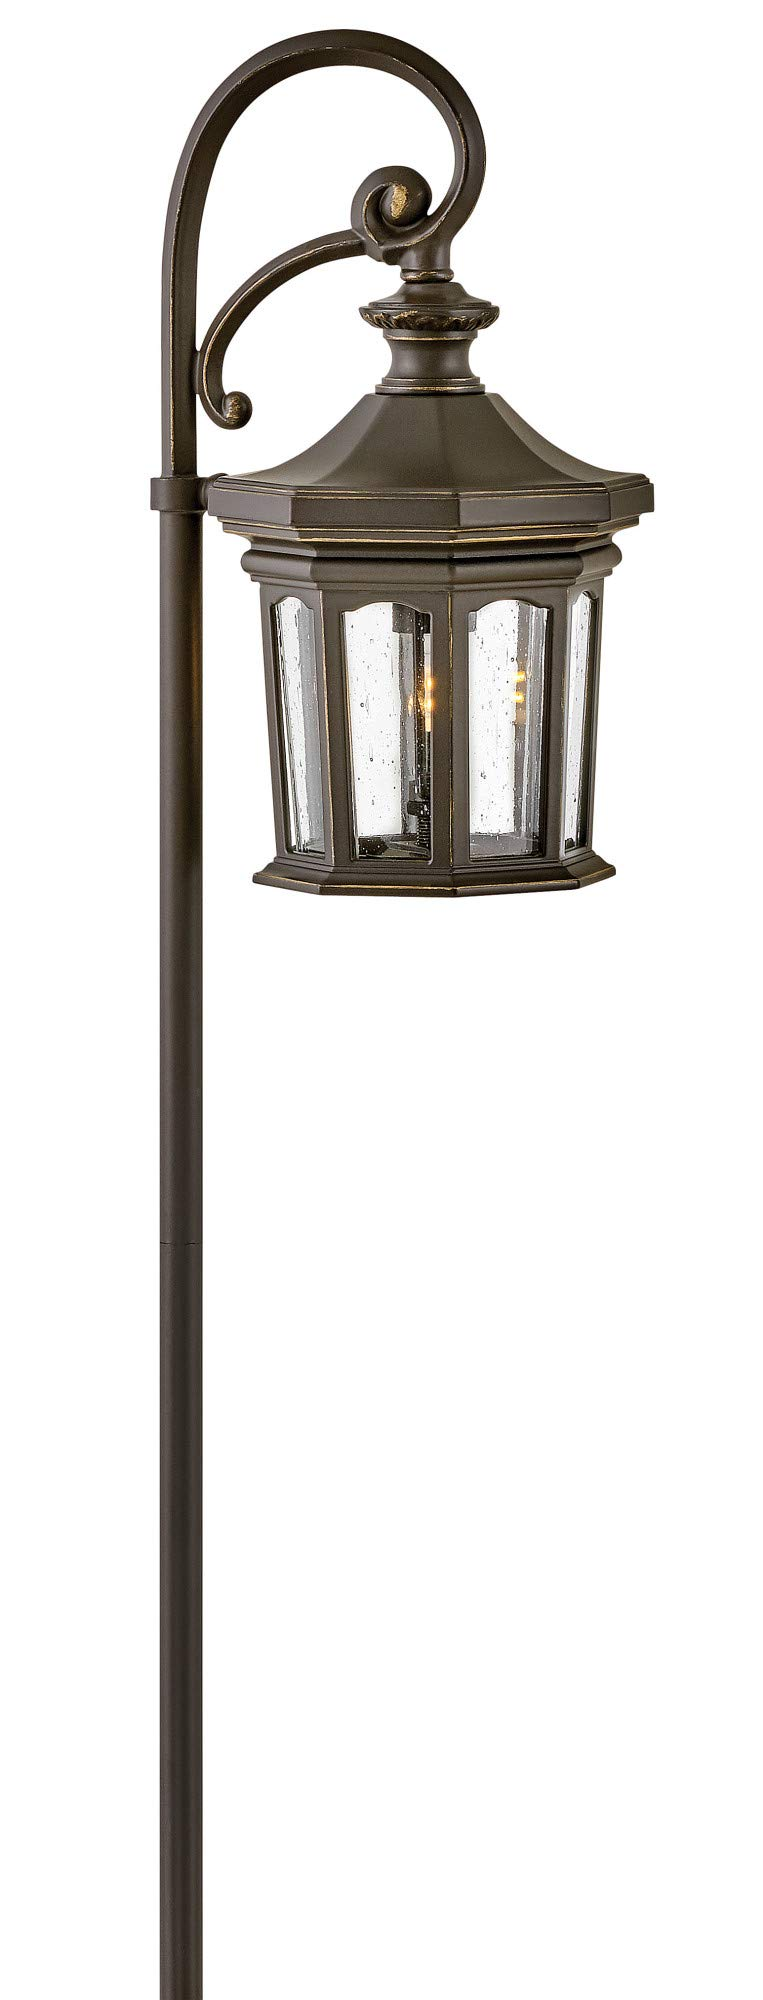 Hinkley Lighting 1513OZ 12v 18w 22'' Tall Cast Aluminum Path Light from The Raley Collection